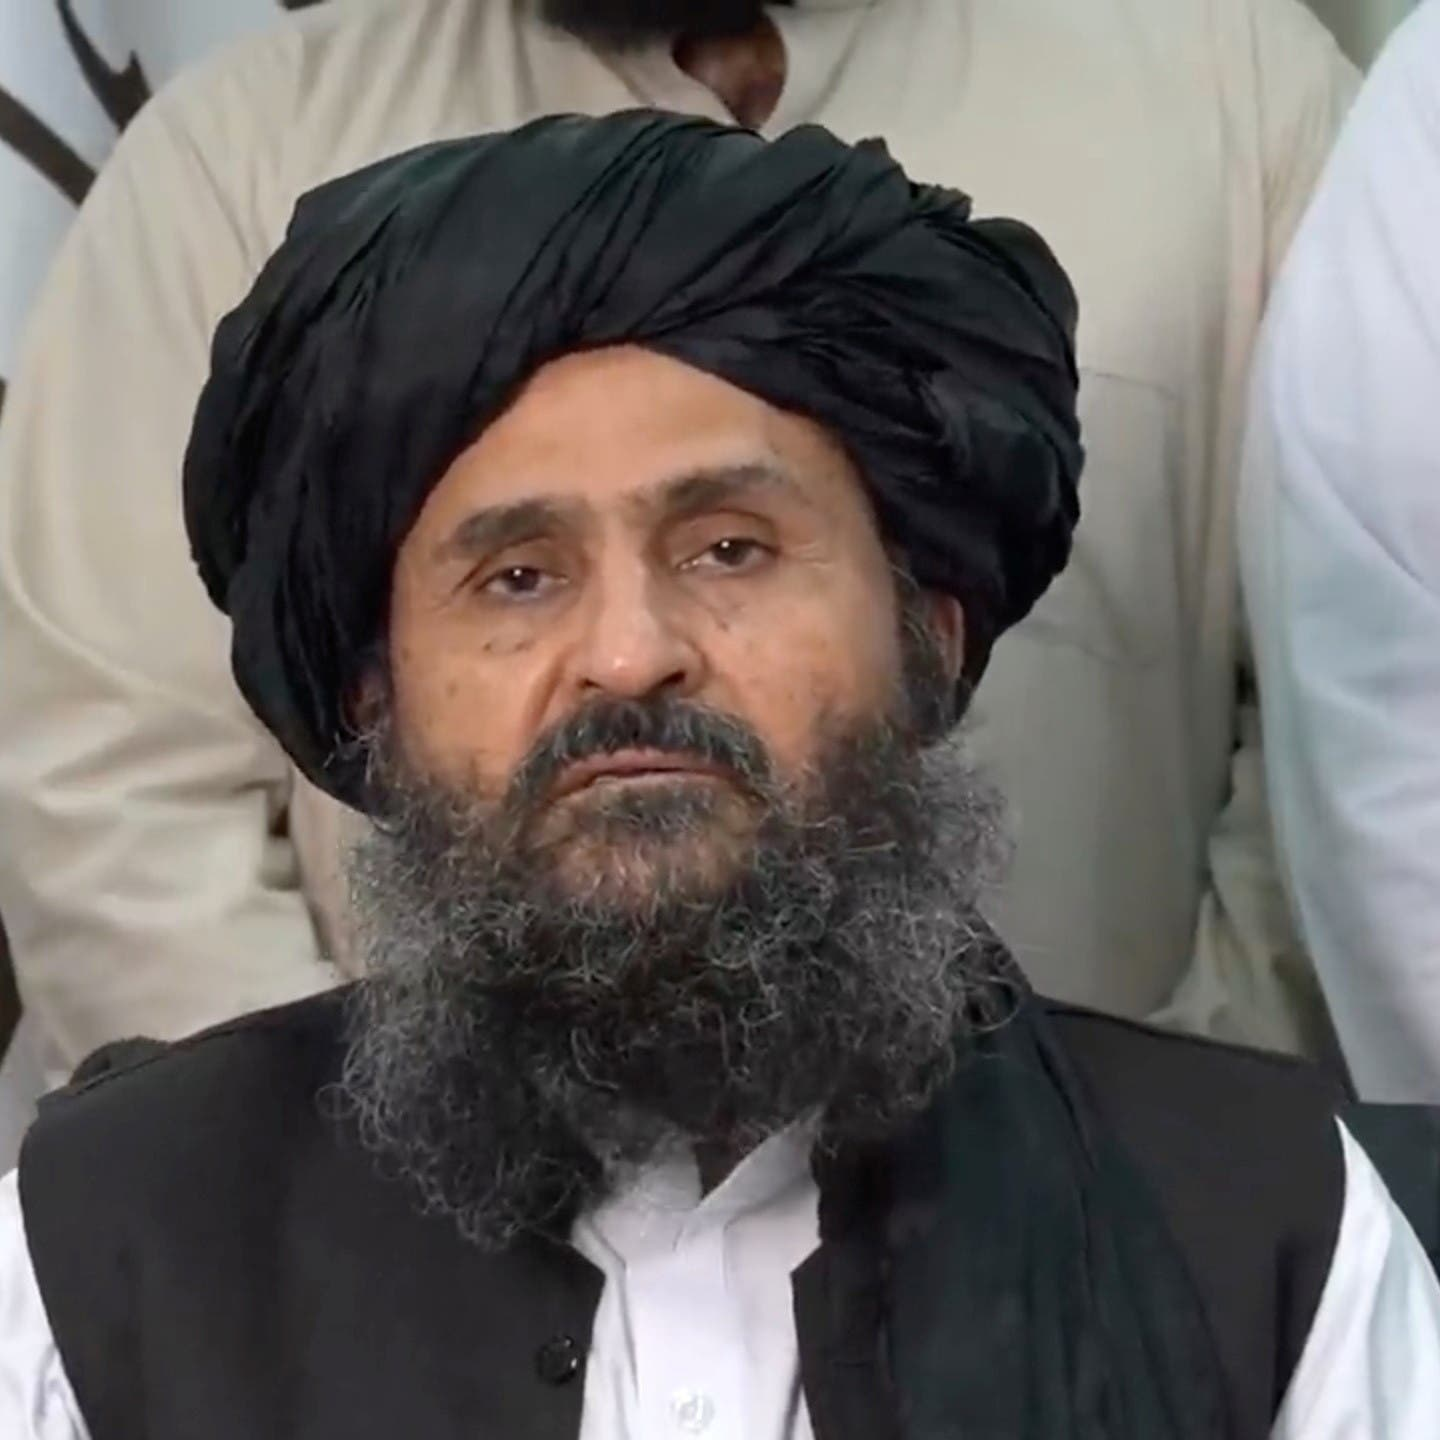 Taliban co-founder Mullah Baradar returns to Afghanistan for first time in 10 years